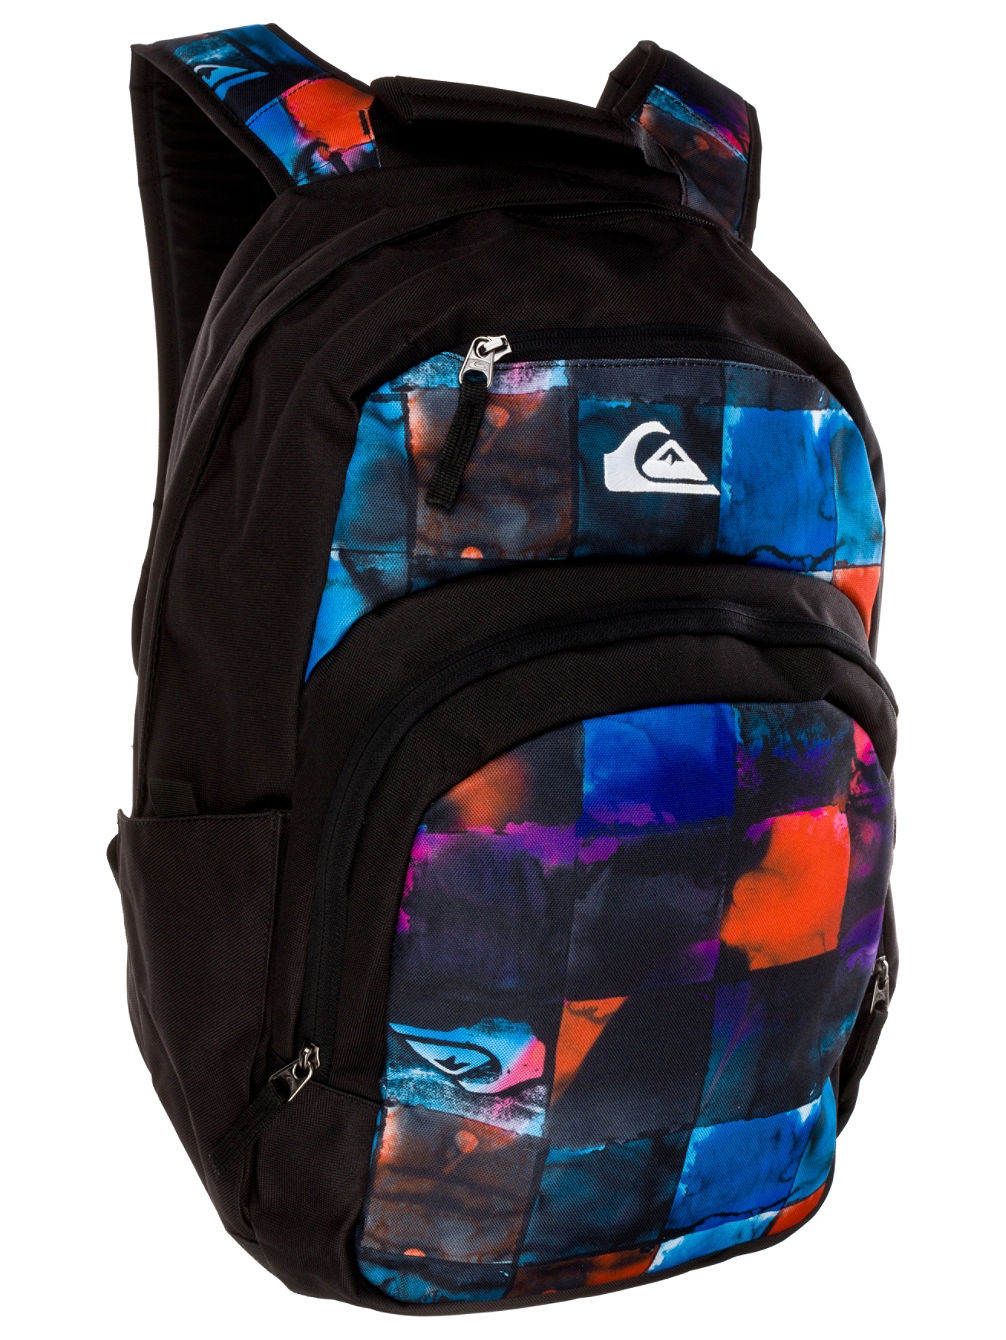 Mudo Backpack